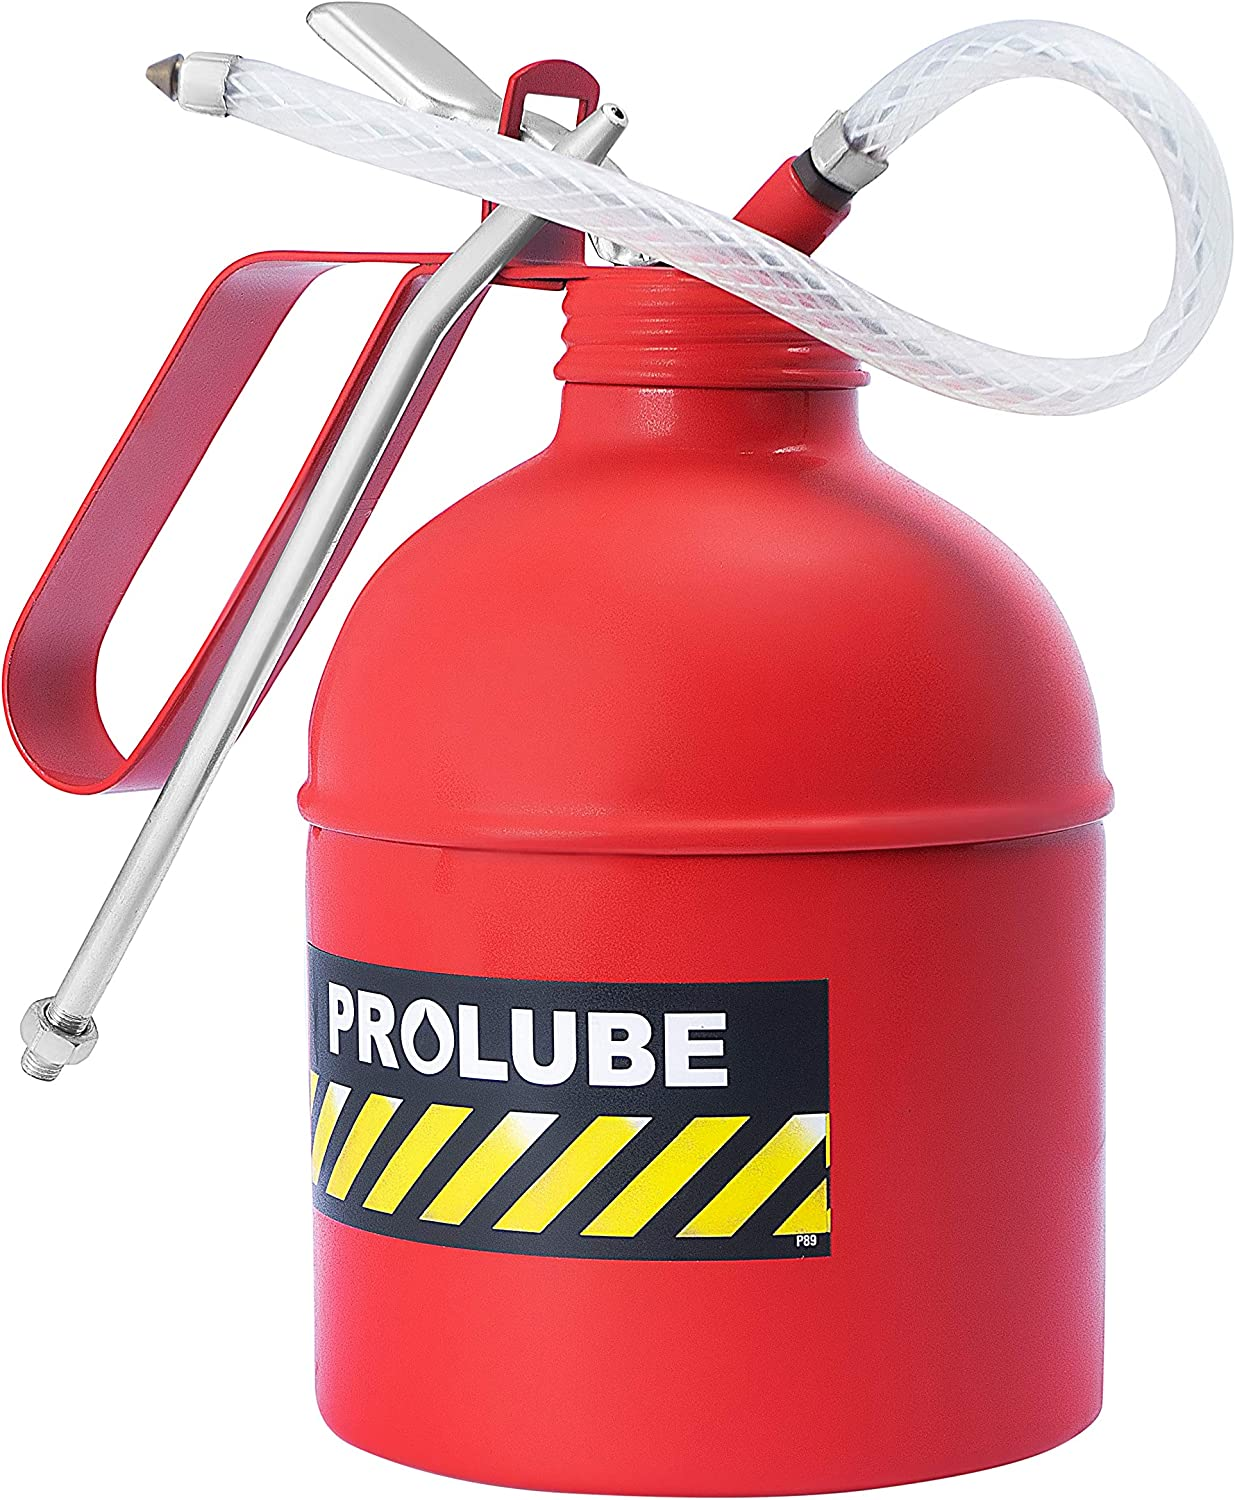 41430 PROLUBE 6-Ounce Dome Shape Capacity 6 oz Red Color Heavy Duty Pistol Type Oiler 200ml Rigid /& Flexible Spout Steel Pump